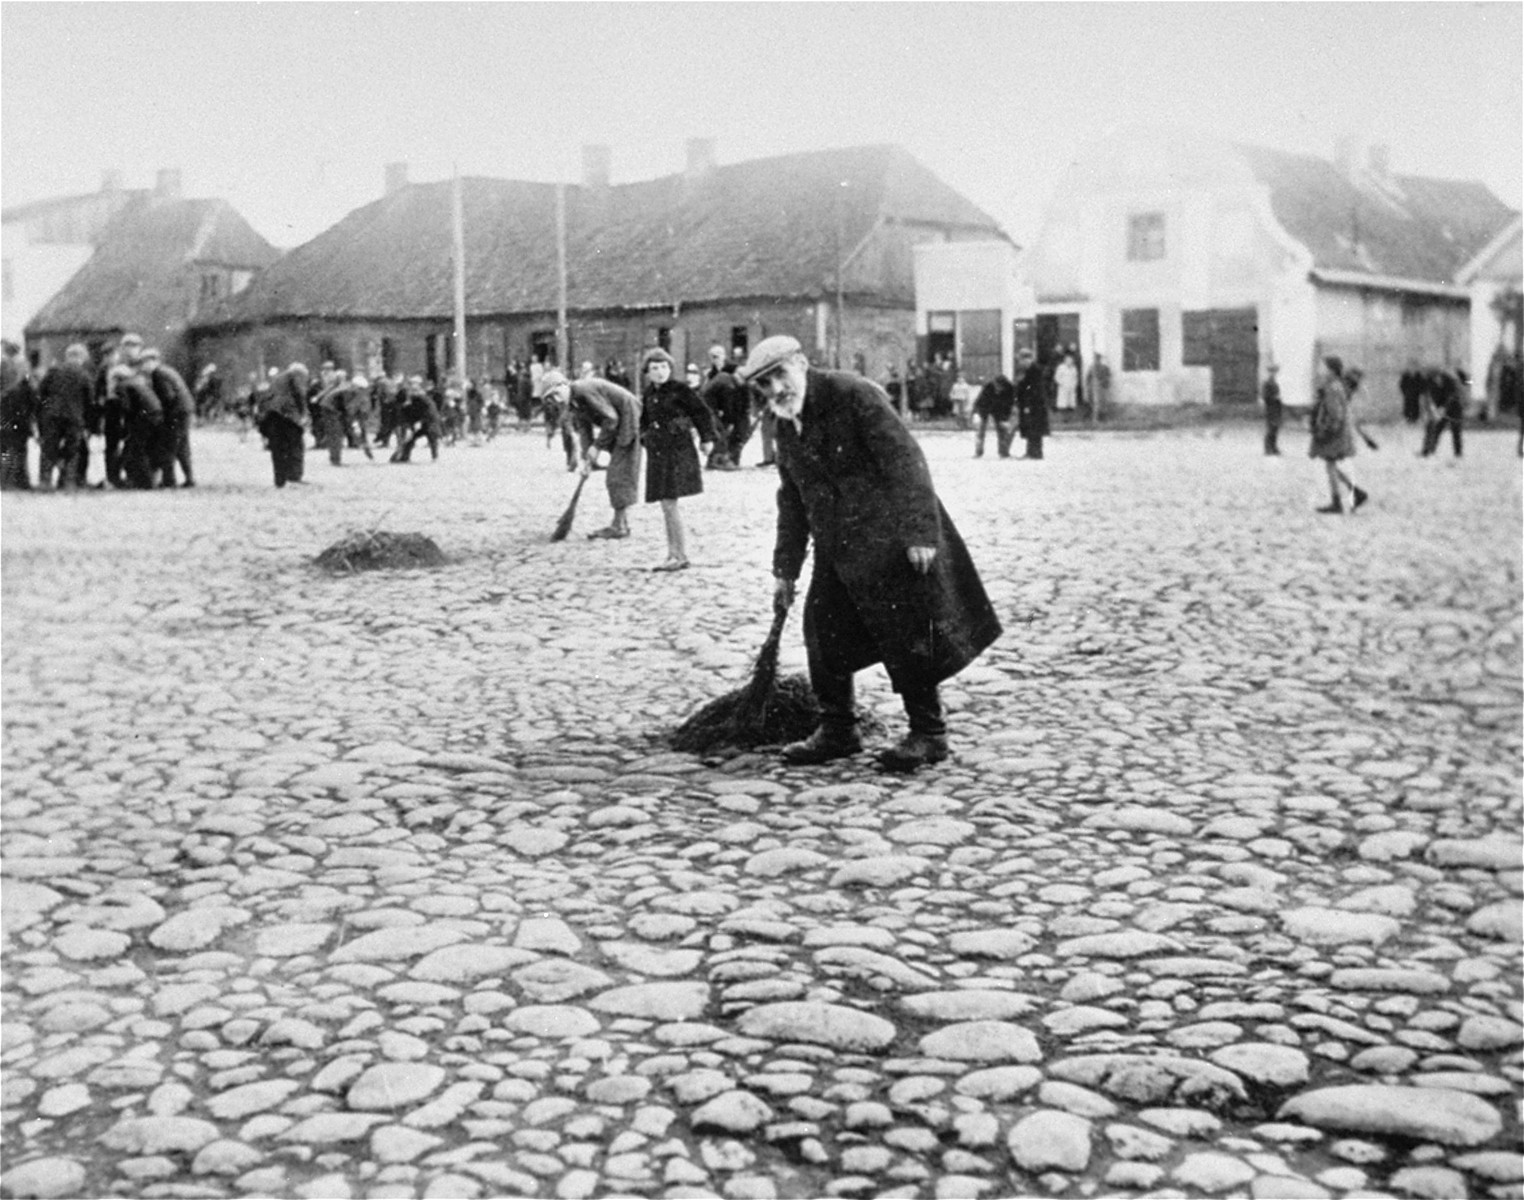 Jews are forced to sweep the pavement in the town square of Raciaz.